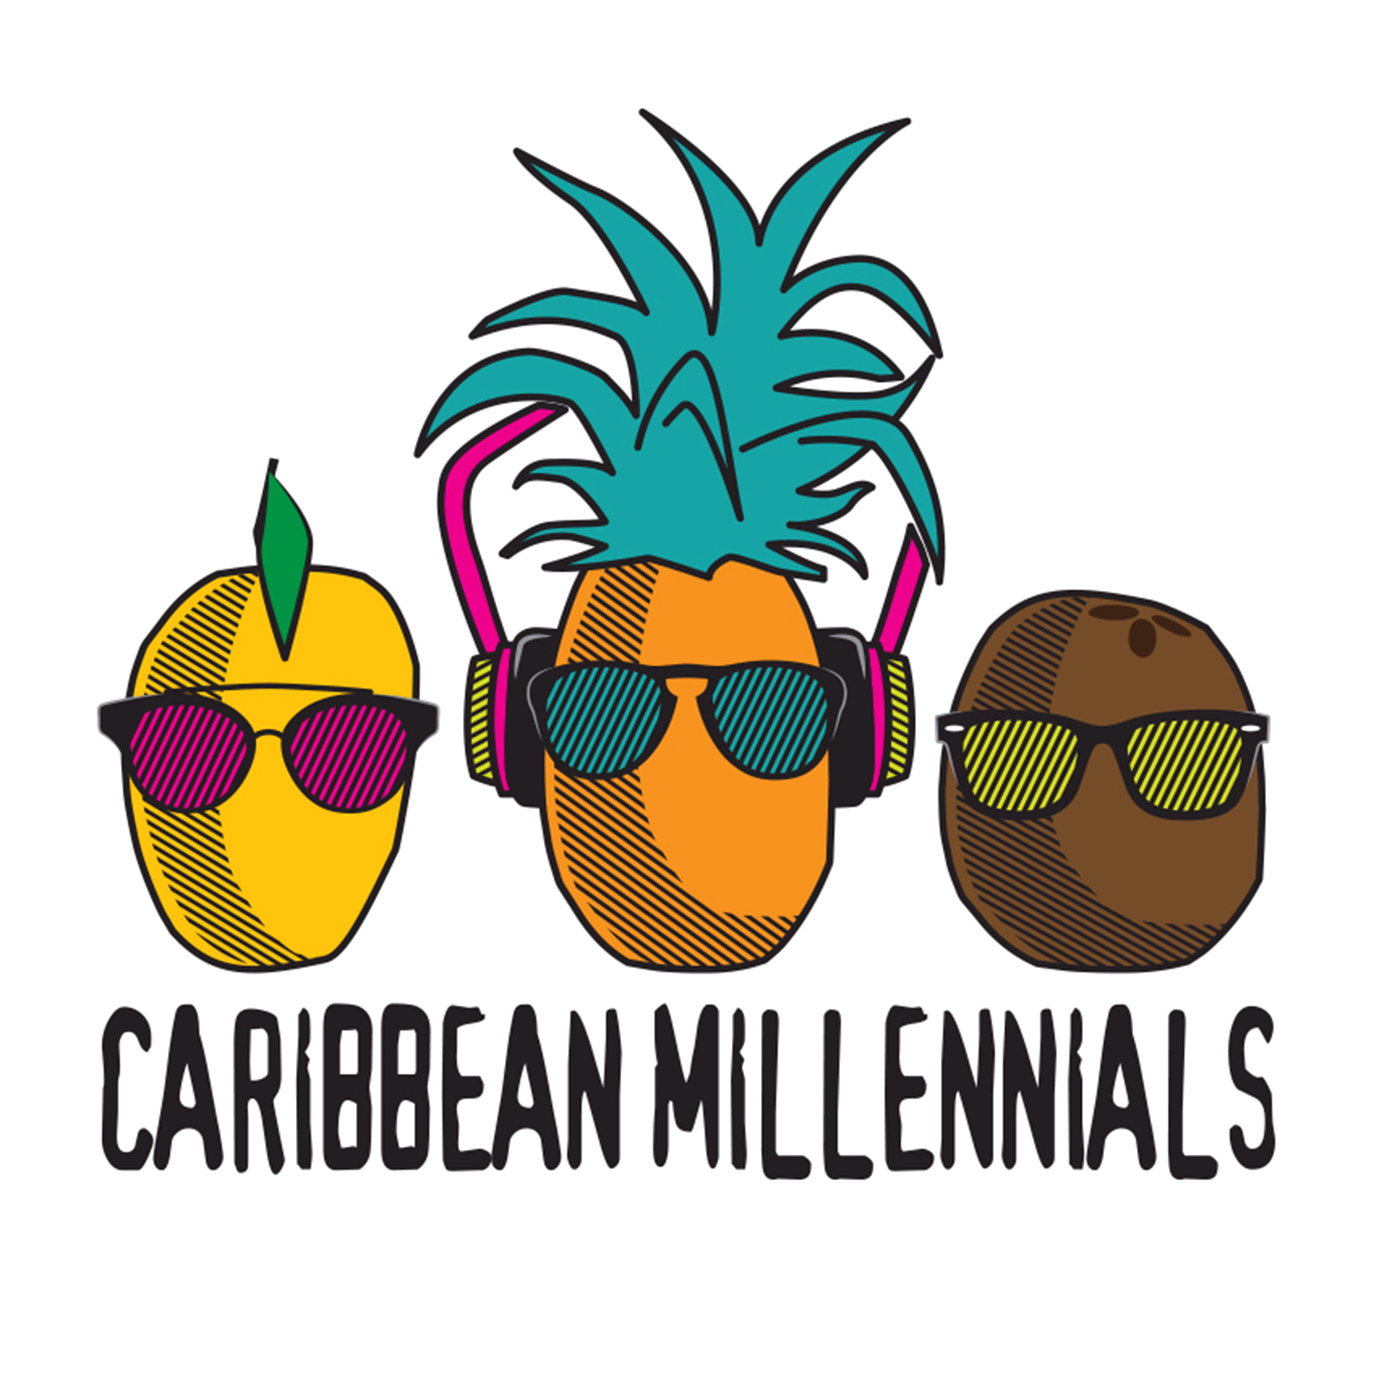 The Caribbean Millennials Podcast